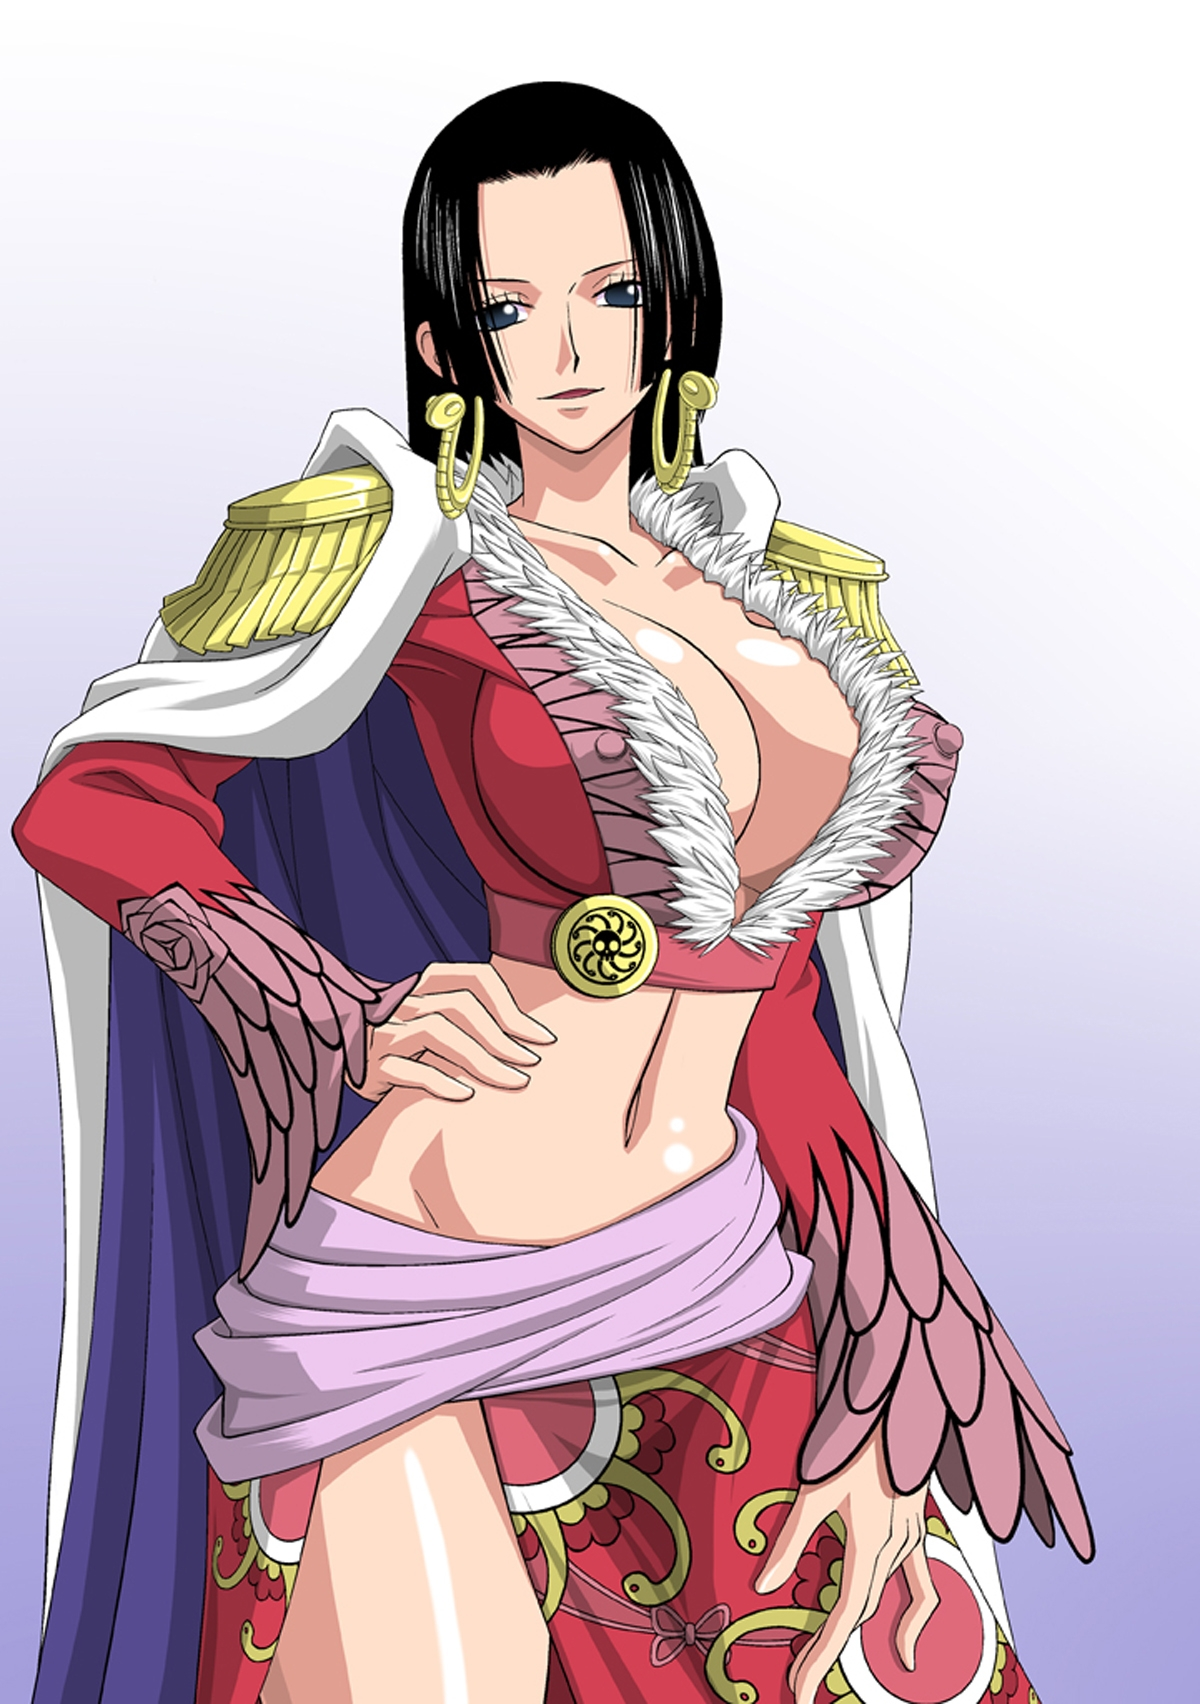 Toon sex pic ##00013062065 bb black hair blue eyess boa hancock breasts cleavage coat earrings erect nipples hand on hip hand on leg highres hips jewelry large breasts midriff navel nel-zel formula nipples one piece solo standing